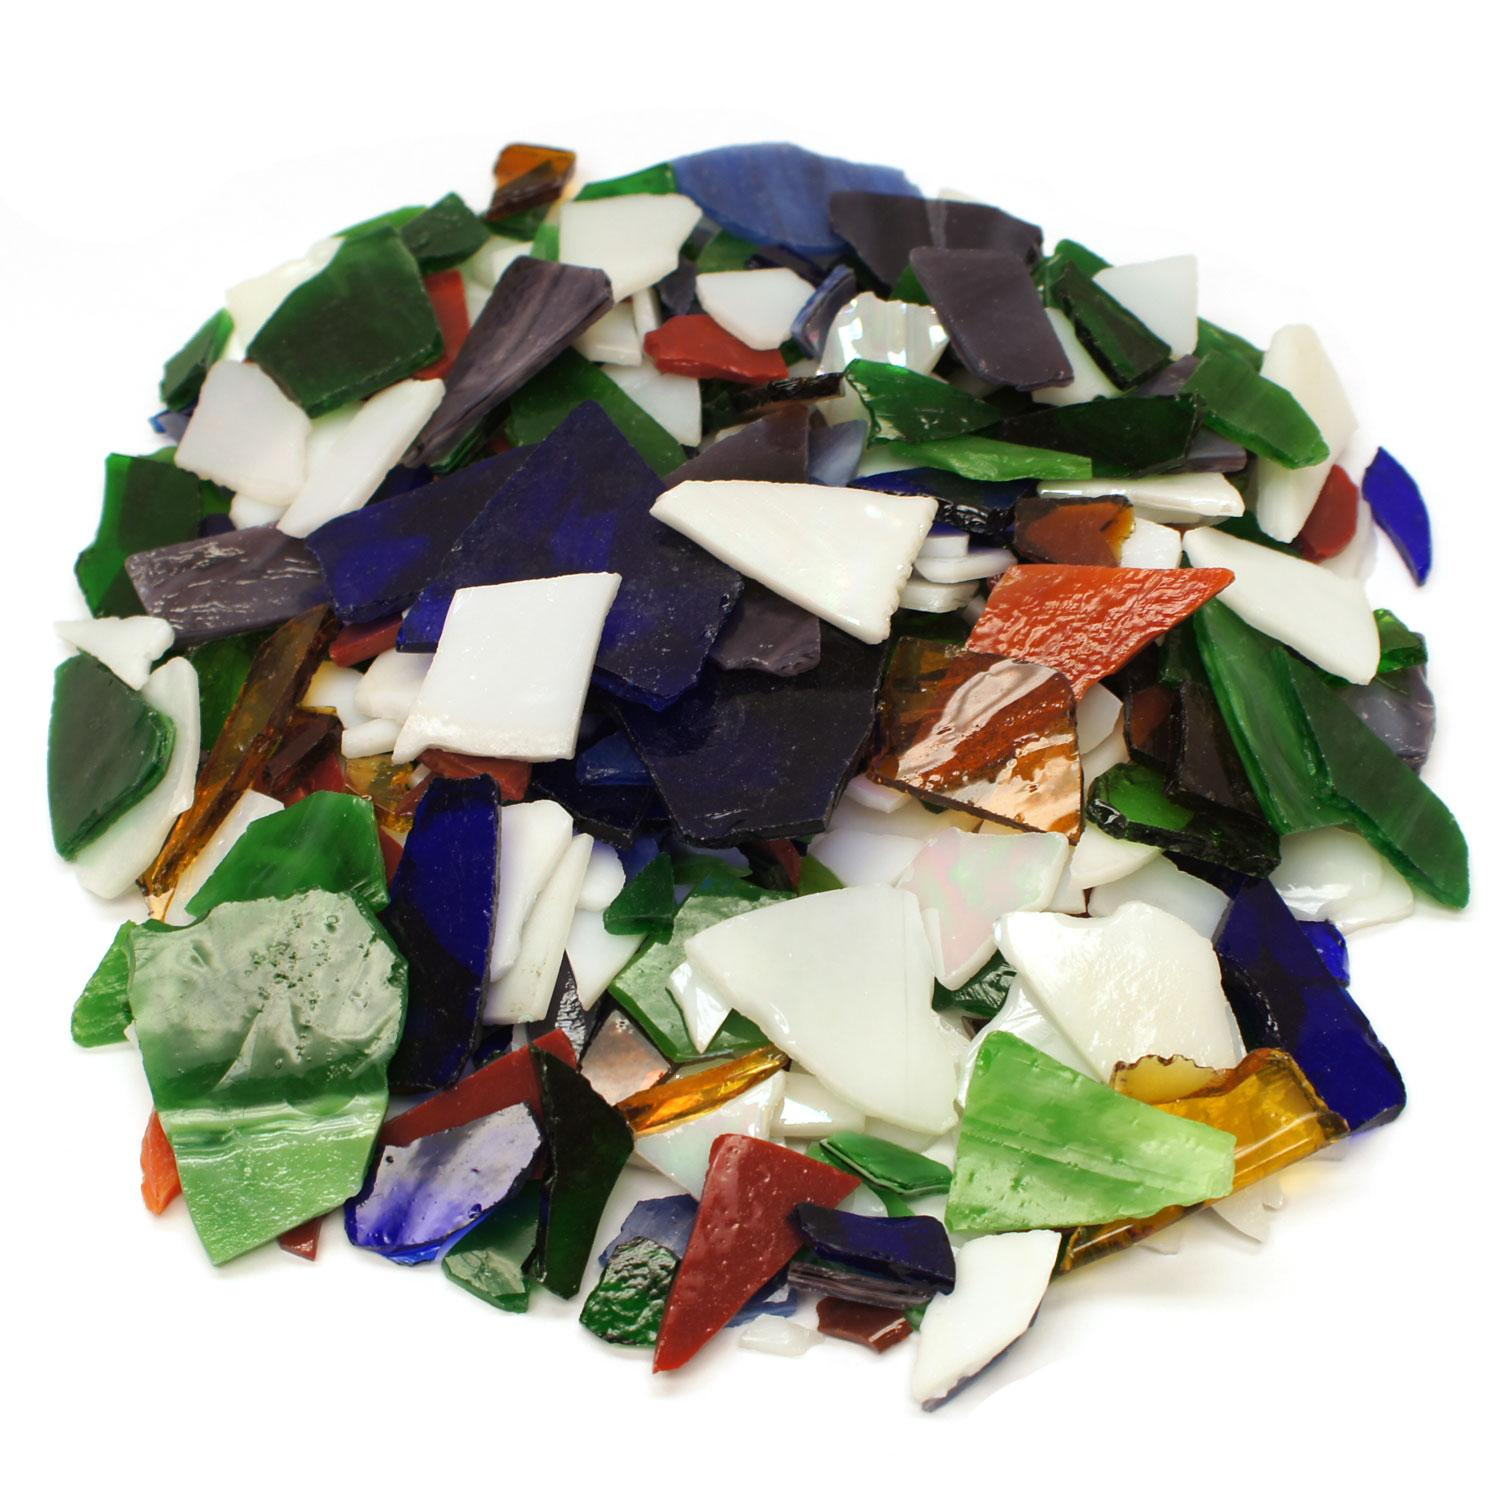 Primary Mix Mosaic Stained Glass Bits - 20 oz